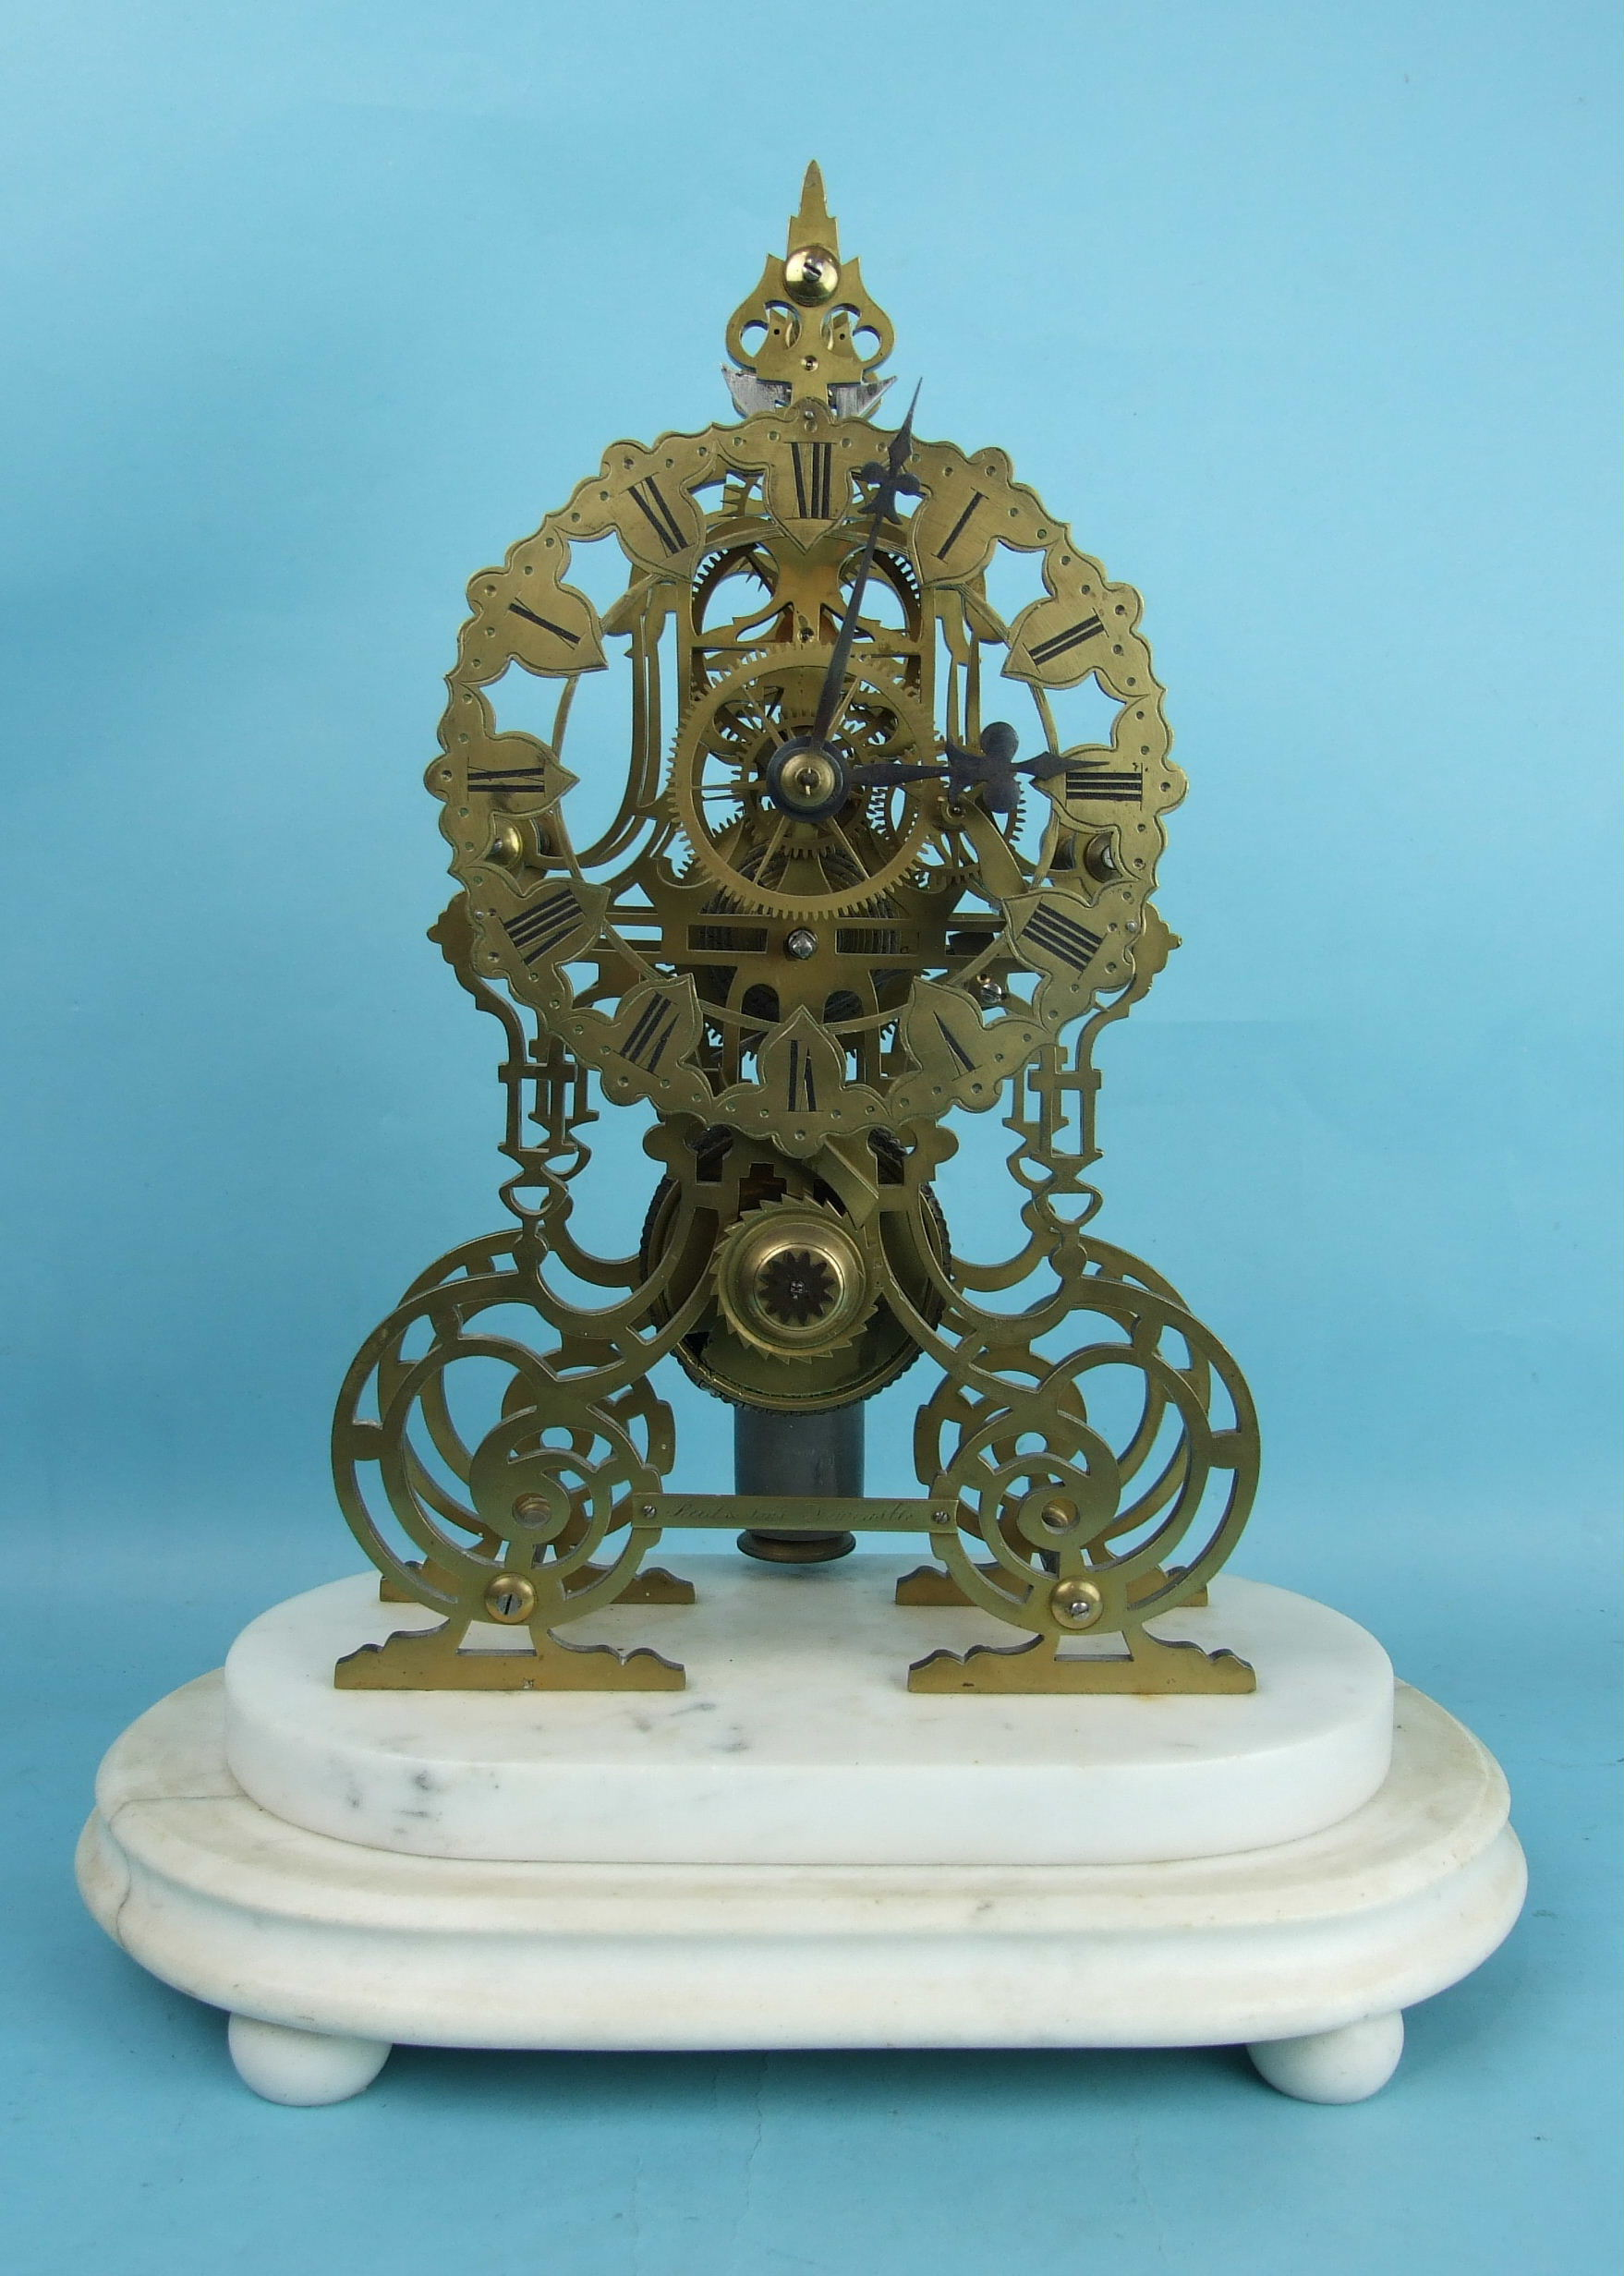 Lot 126 - Reid & Sons, Newcastle, a 19th century brass skeleton time piece having a single chain-driven